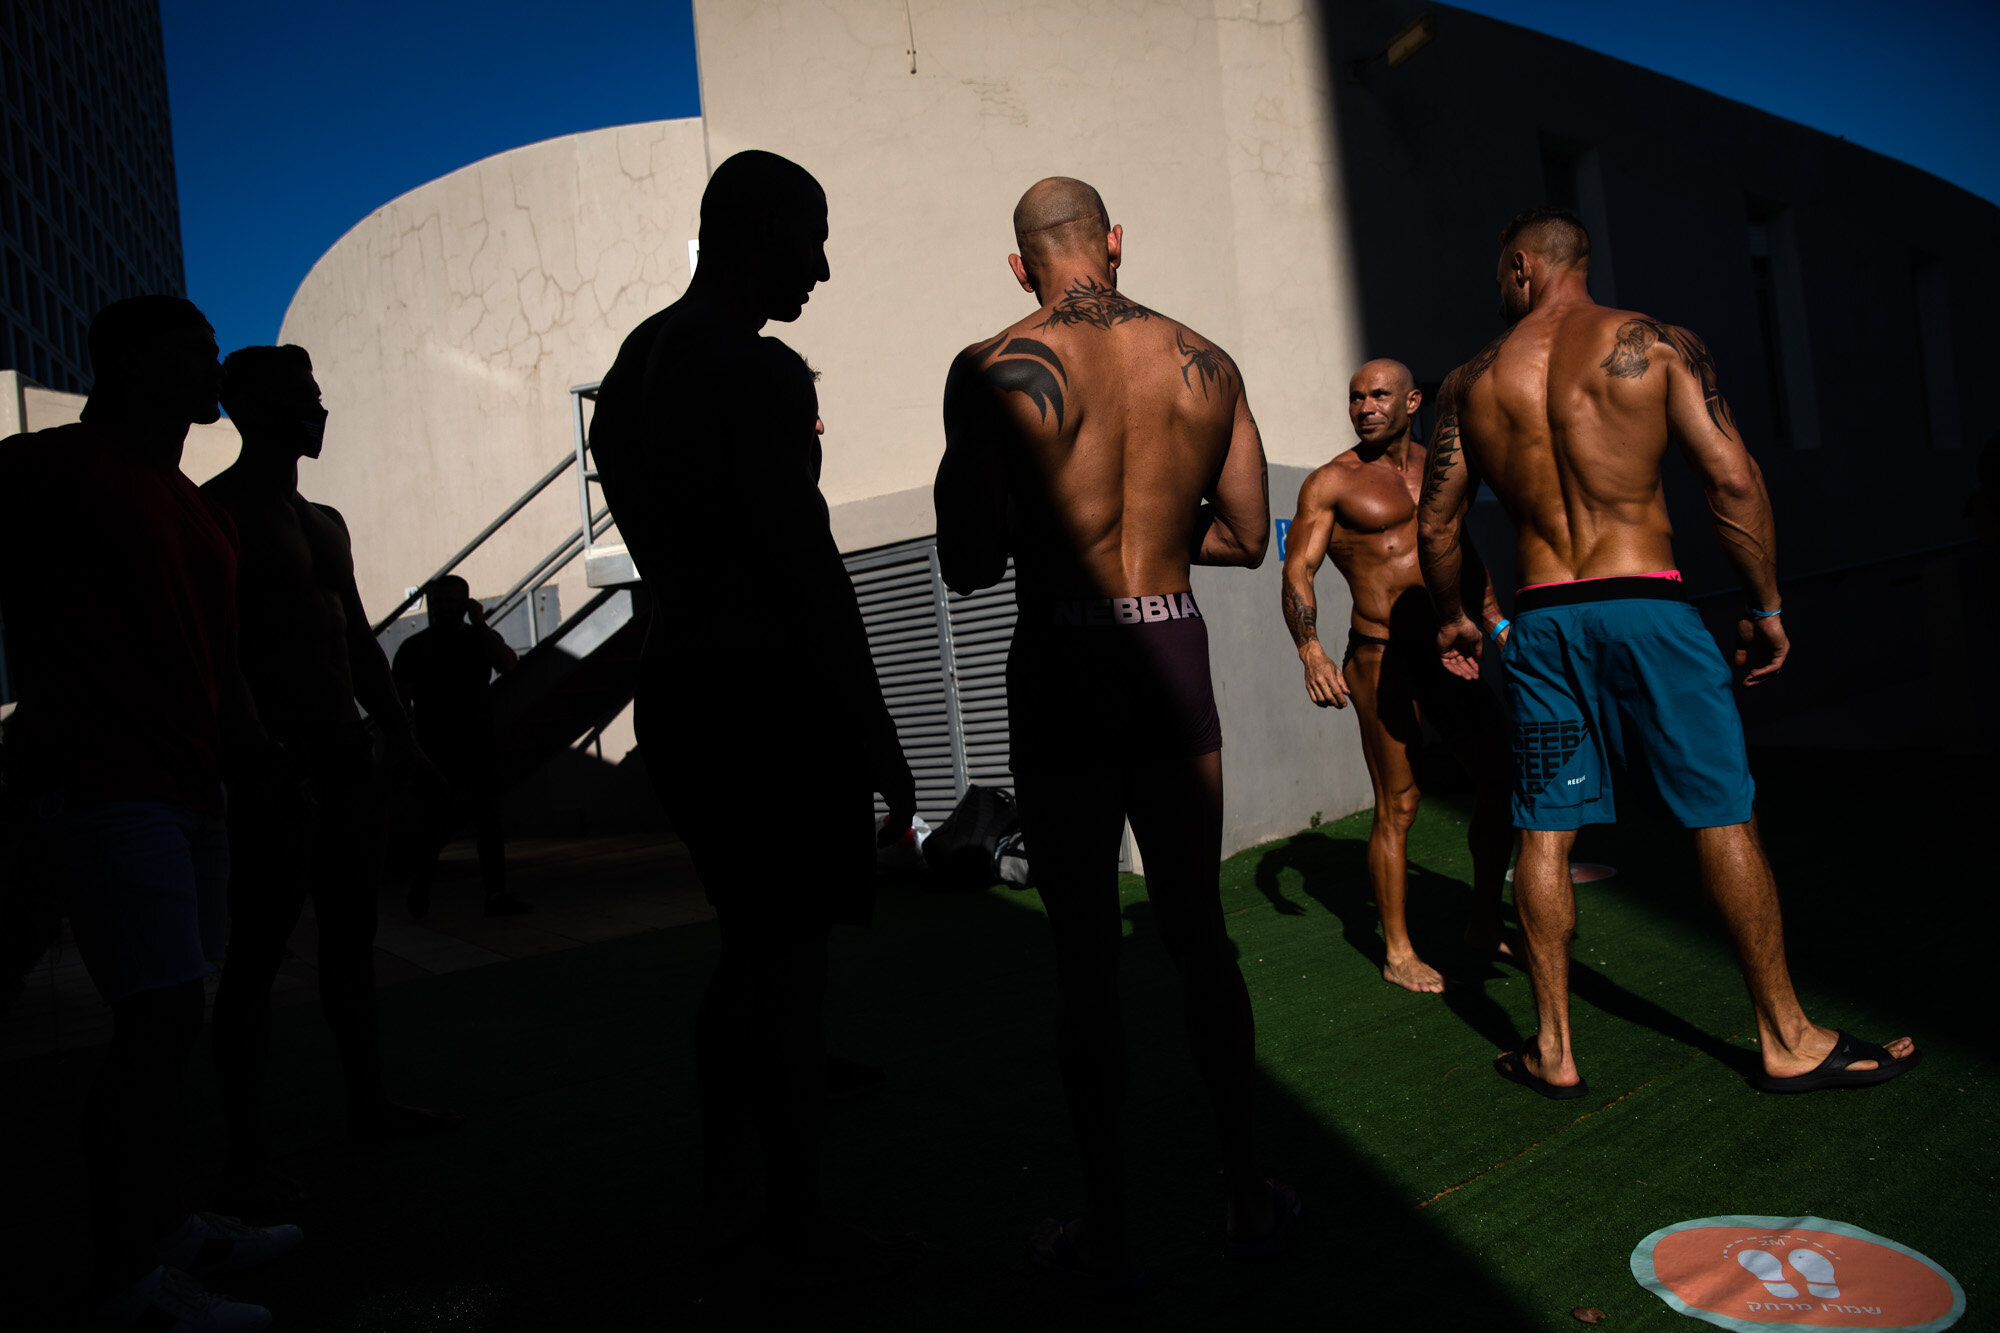 Contestants exercise backstage during the National Amateur Body Builders Association competition in Tel Aviv, Israel, on Aug. 19, 2020. Because of the coronavirus pandemic, this year's competition was staged outdoors and the 85 participants were required to don protective masks in line with health codes.  (AP Photo/Oded Balilty)